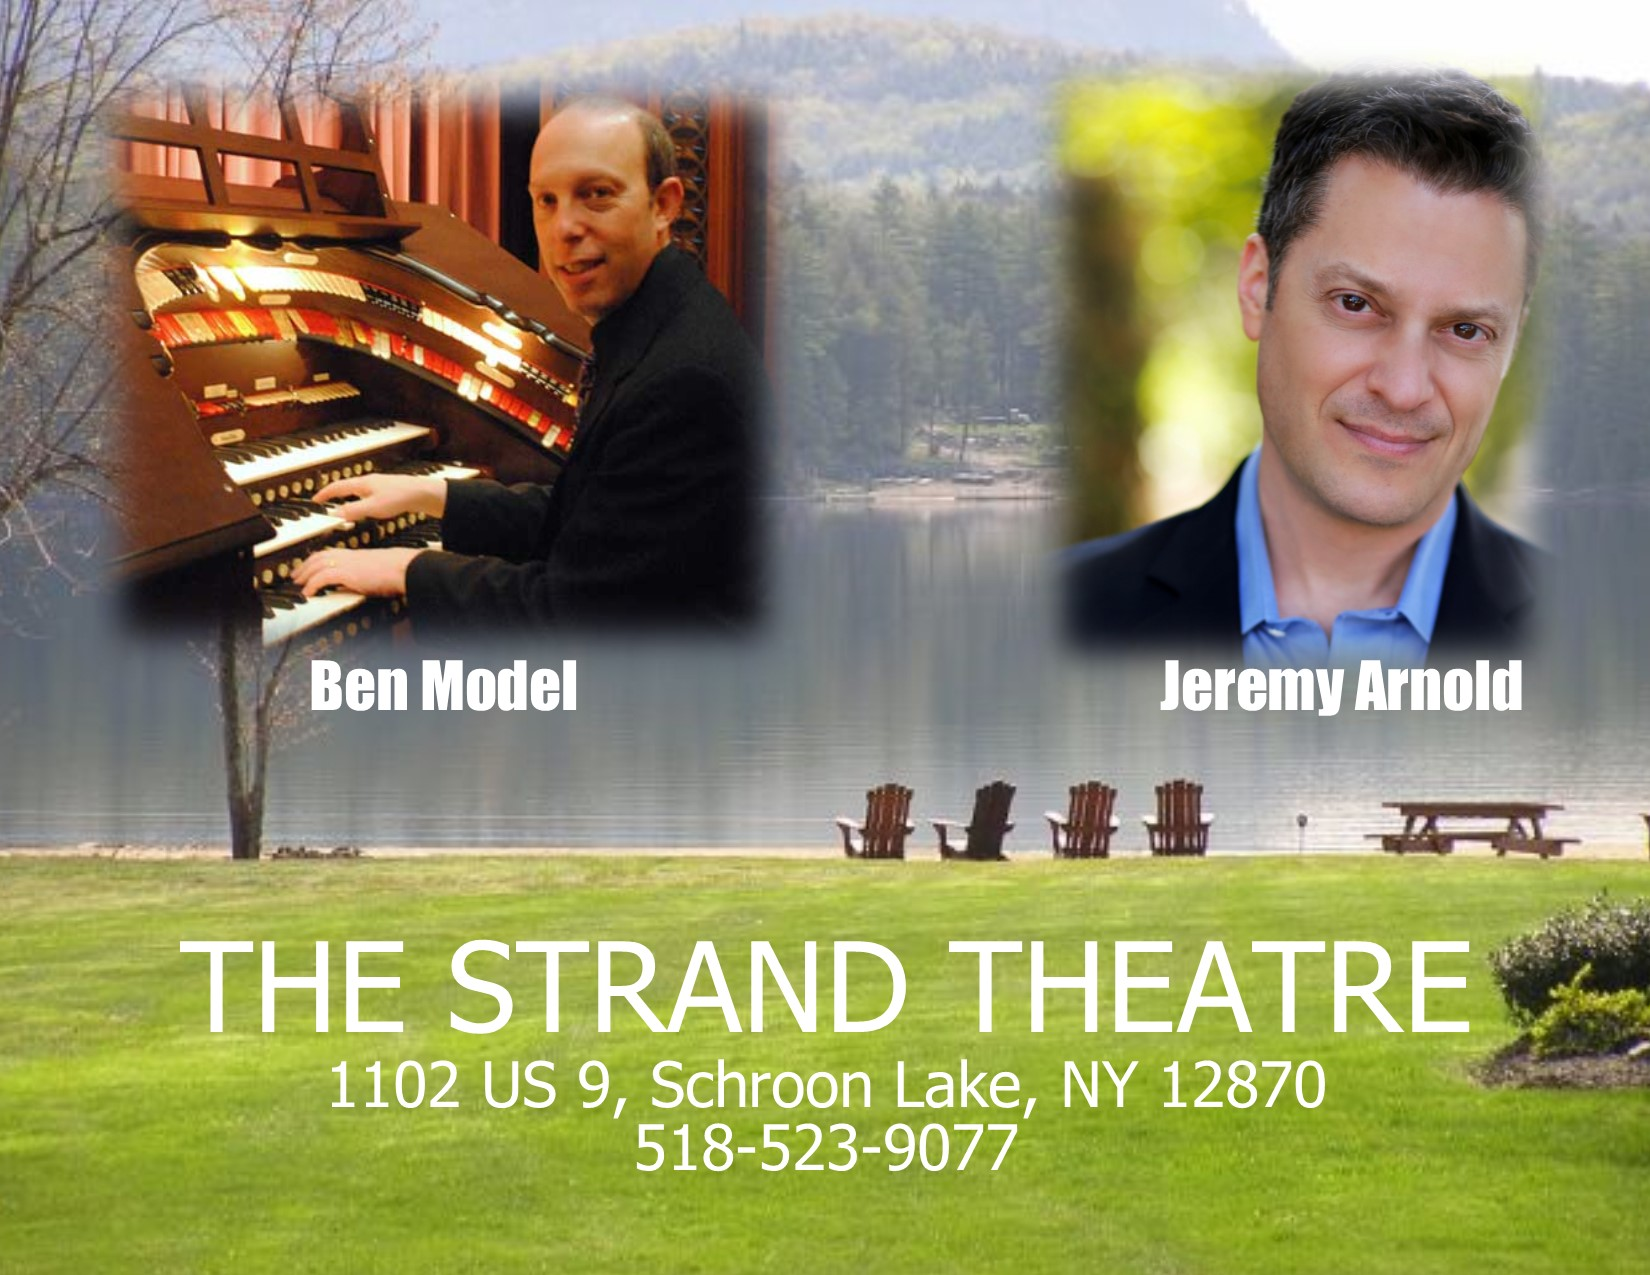 "Summer Series at the Strand! - The Adirondack Film Society is a proud sponsor of special film programming at the Strand Theatre in Schroon Lake, NY. The 1st program on July 29th at 8pm features three short silent films starring Charlie Chaplin with live piano accompaniment (original score) by Ben Model. The 2nd program on August 12th at 8pm is a screening of ""Casablanca"" with a special appearance by Jeremy Arnold to talk about the film. All seats $10.00 at the door.Read the press release"